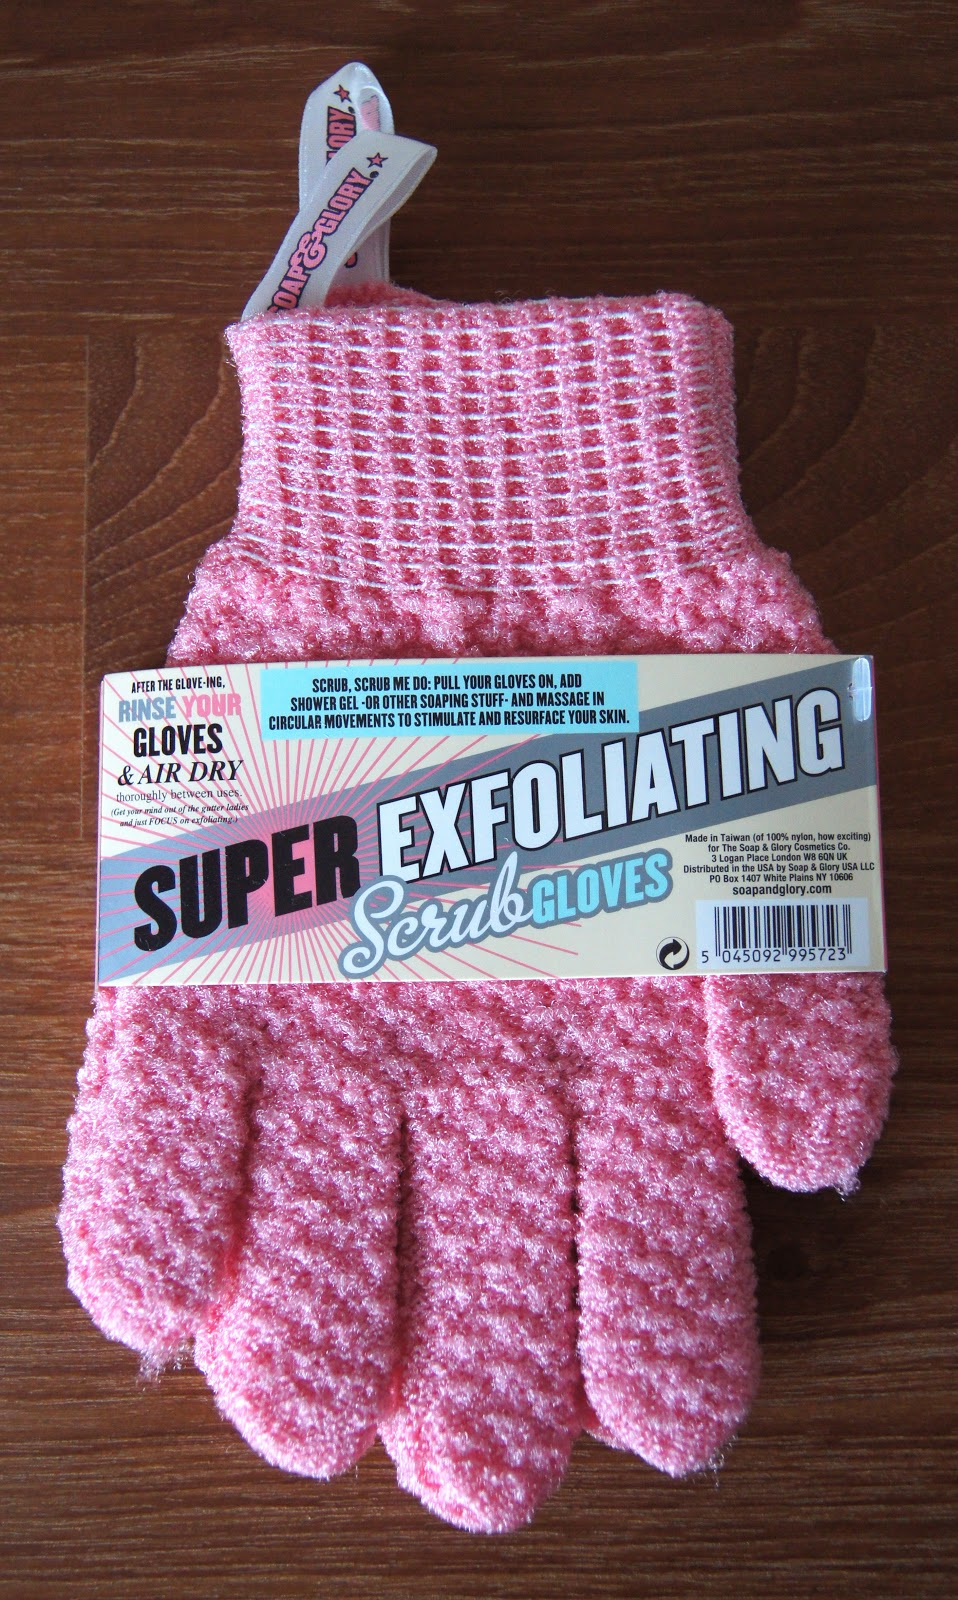 soap and glory super exfoliating scrub gloves review